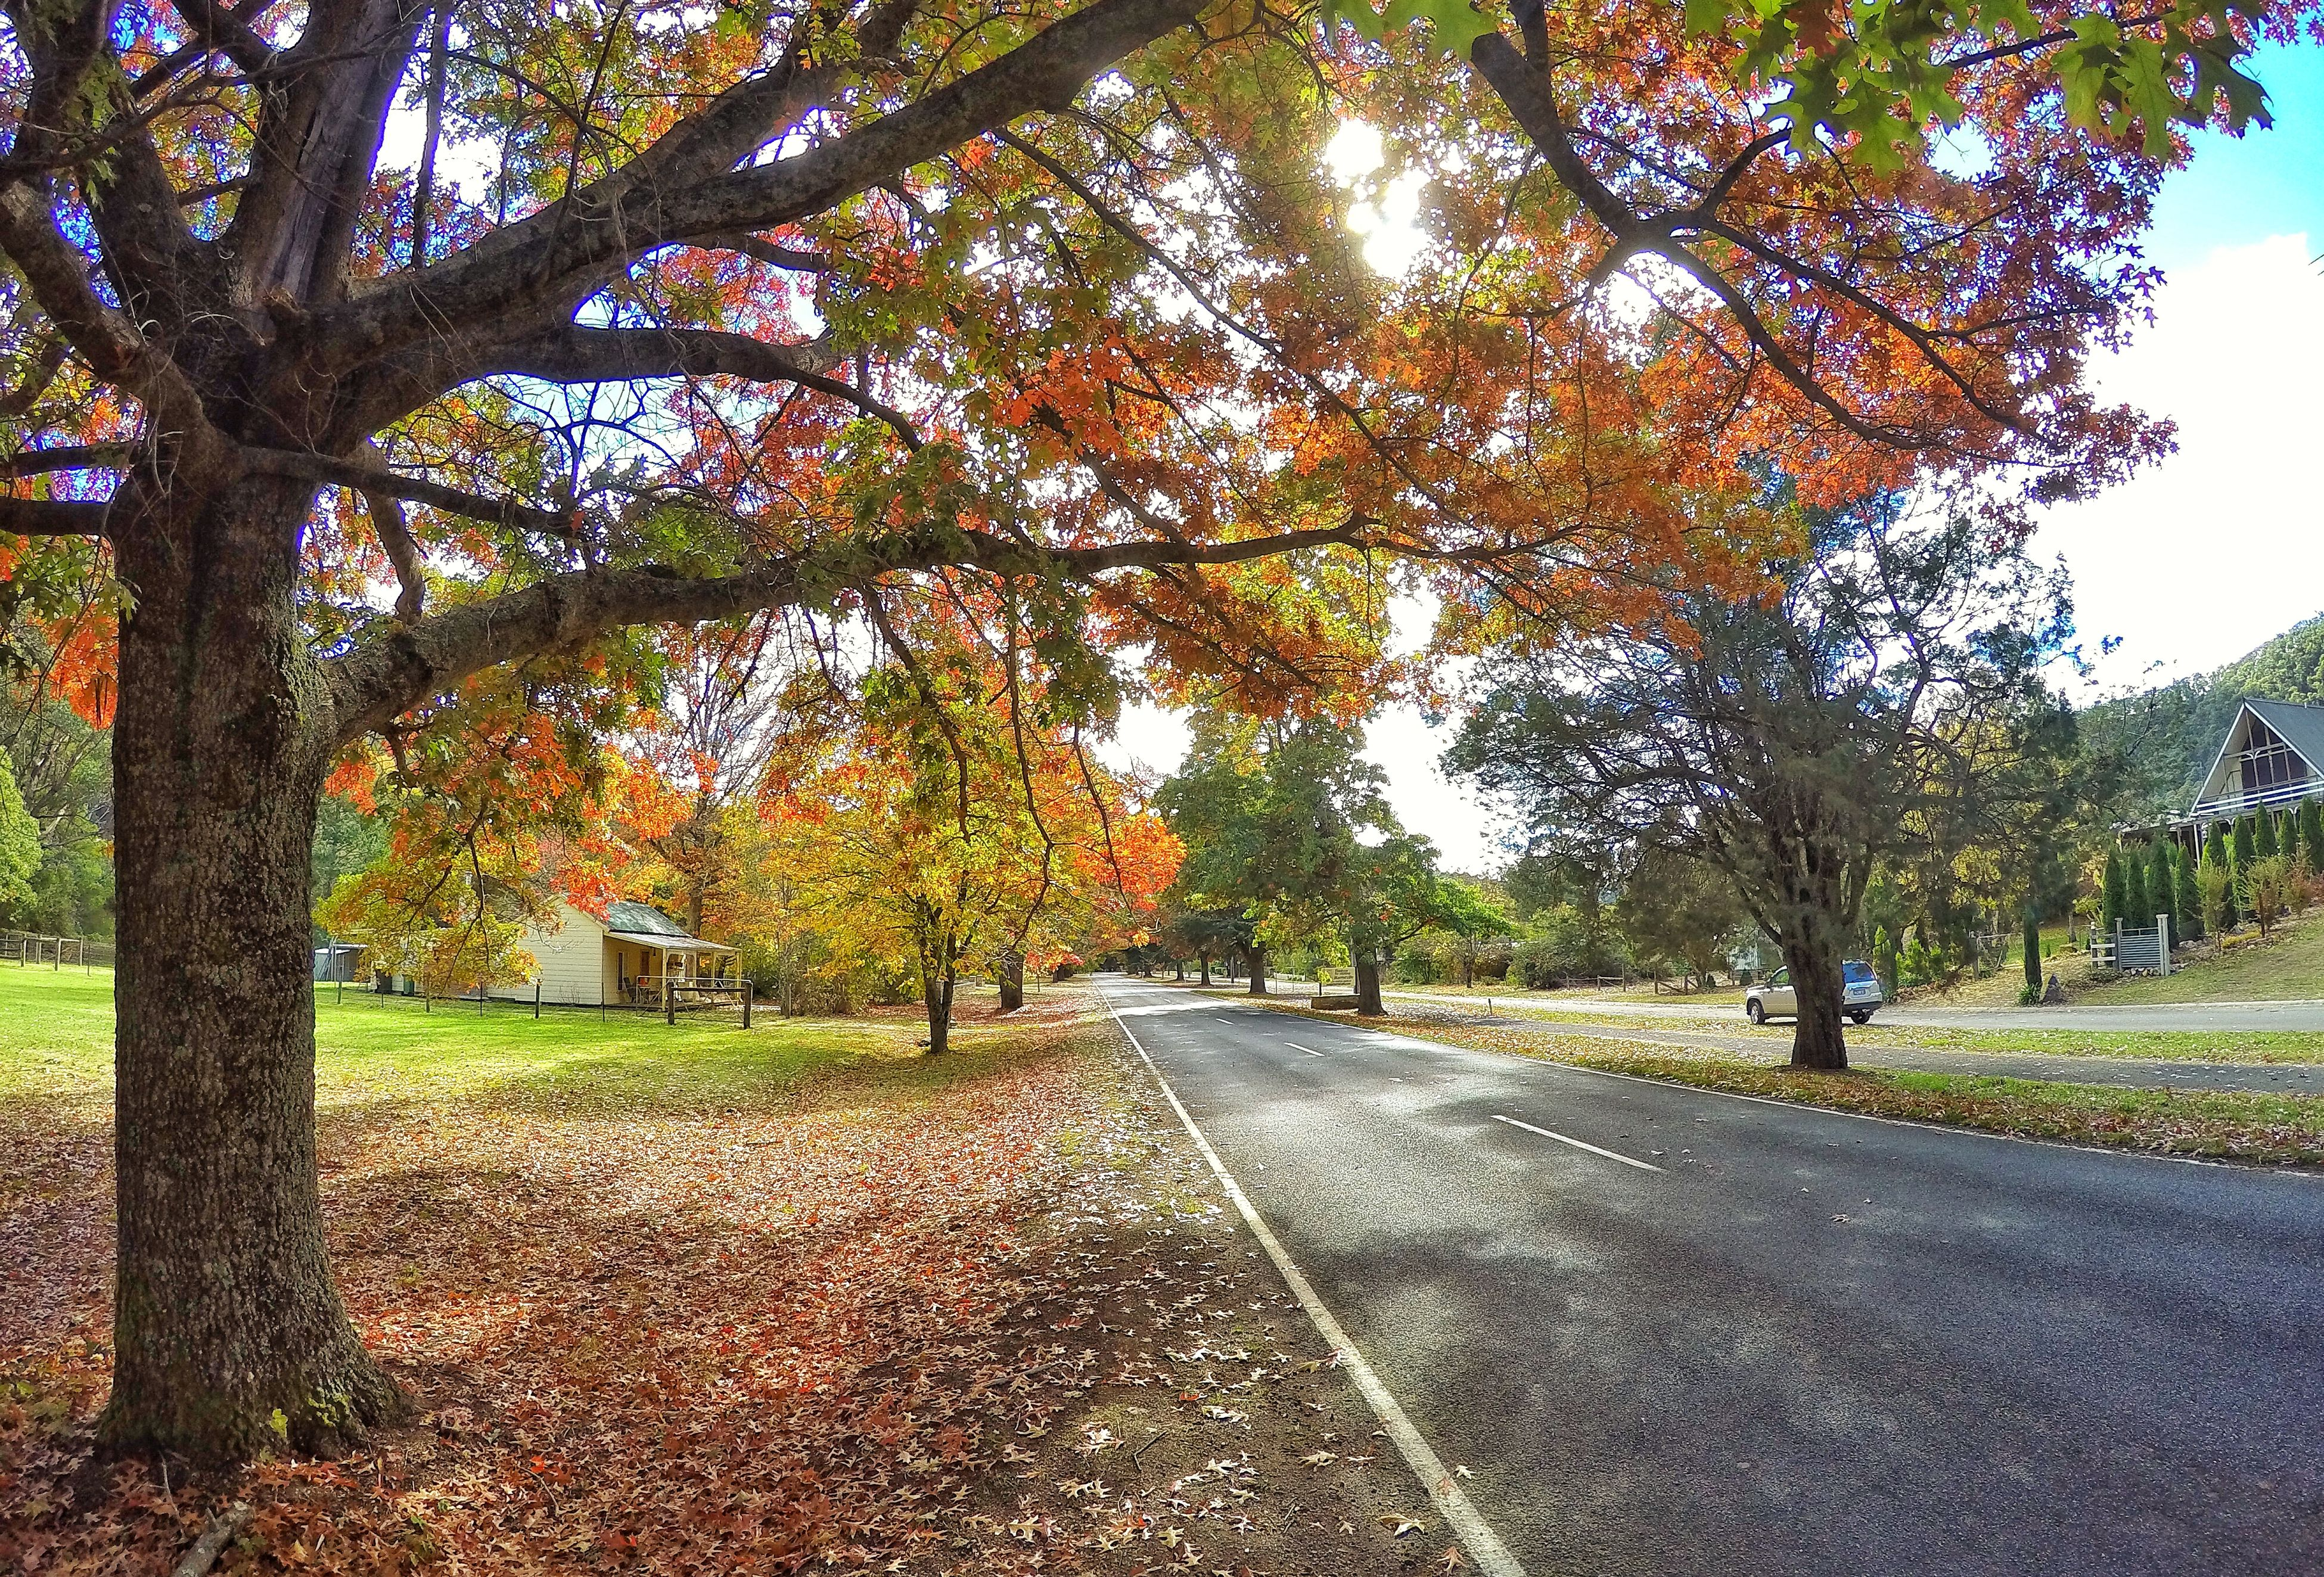 tree, the way forward, road, transportation, tranquility, growth, autumn, nature, diminishing perspective, branch, tranquil scene, beauty in nature, change, vanishing point, scenics, street, empty road, sunlight, day, sky